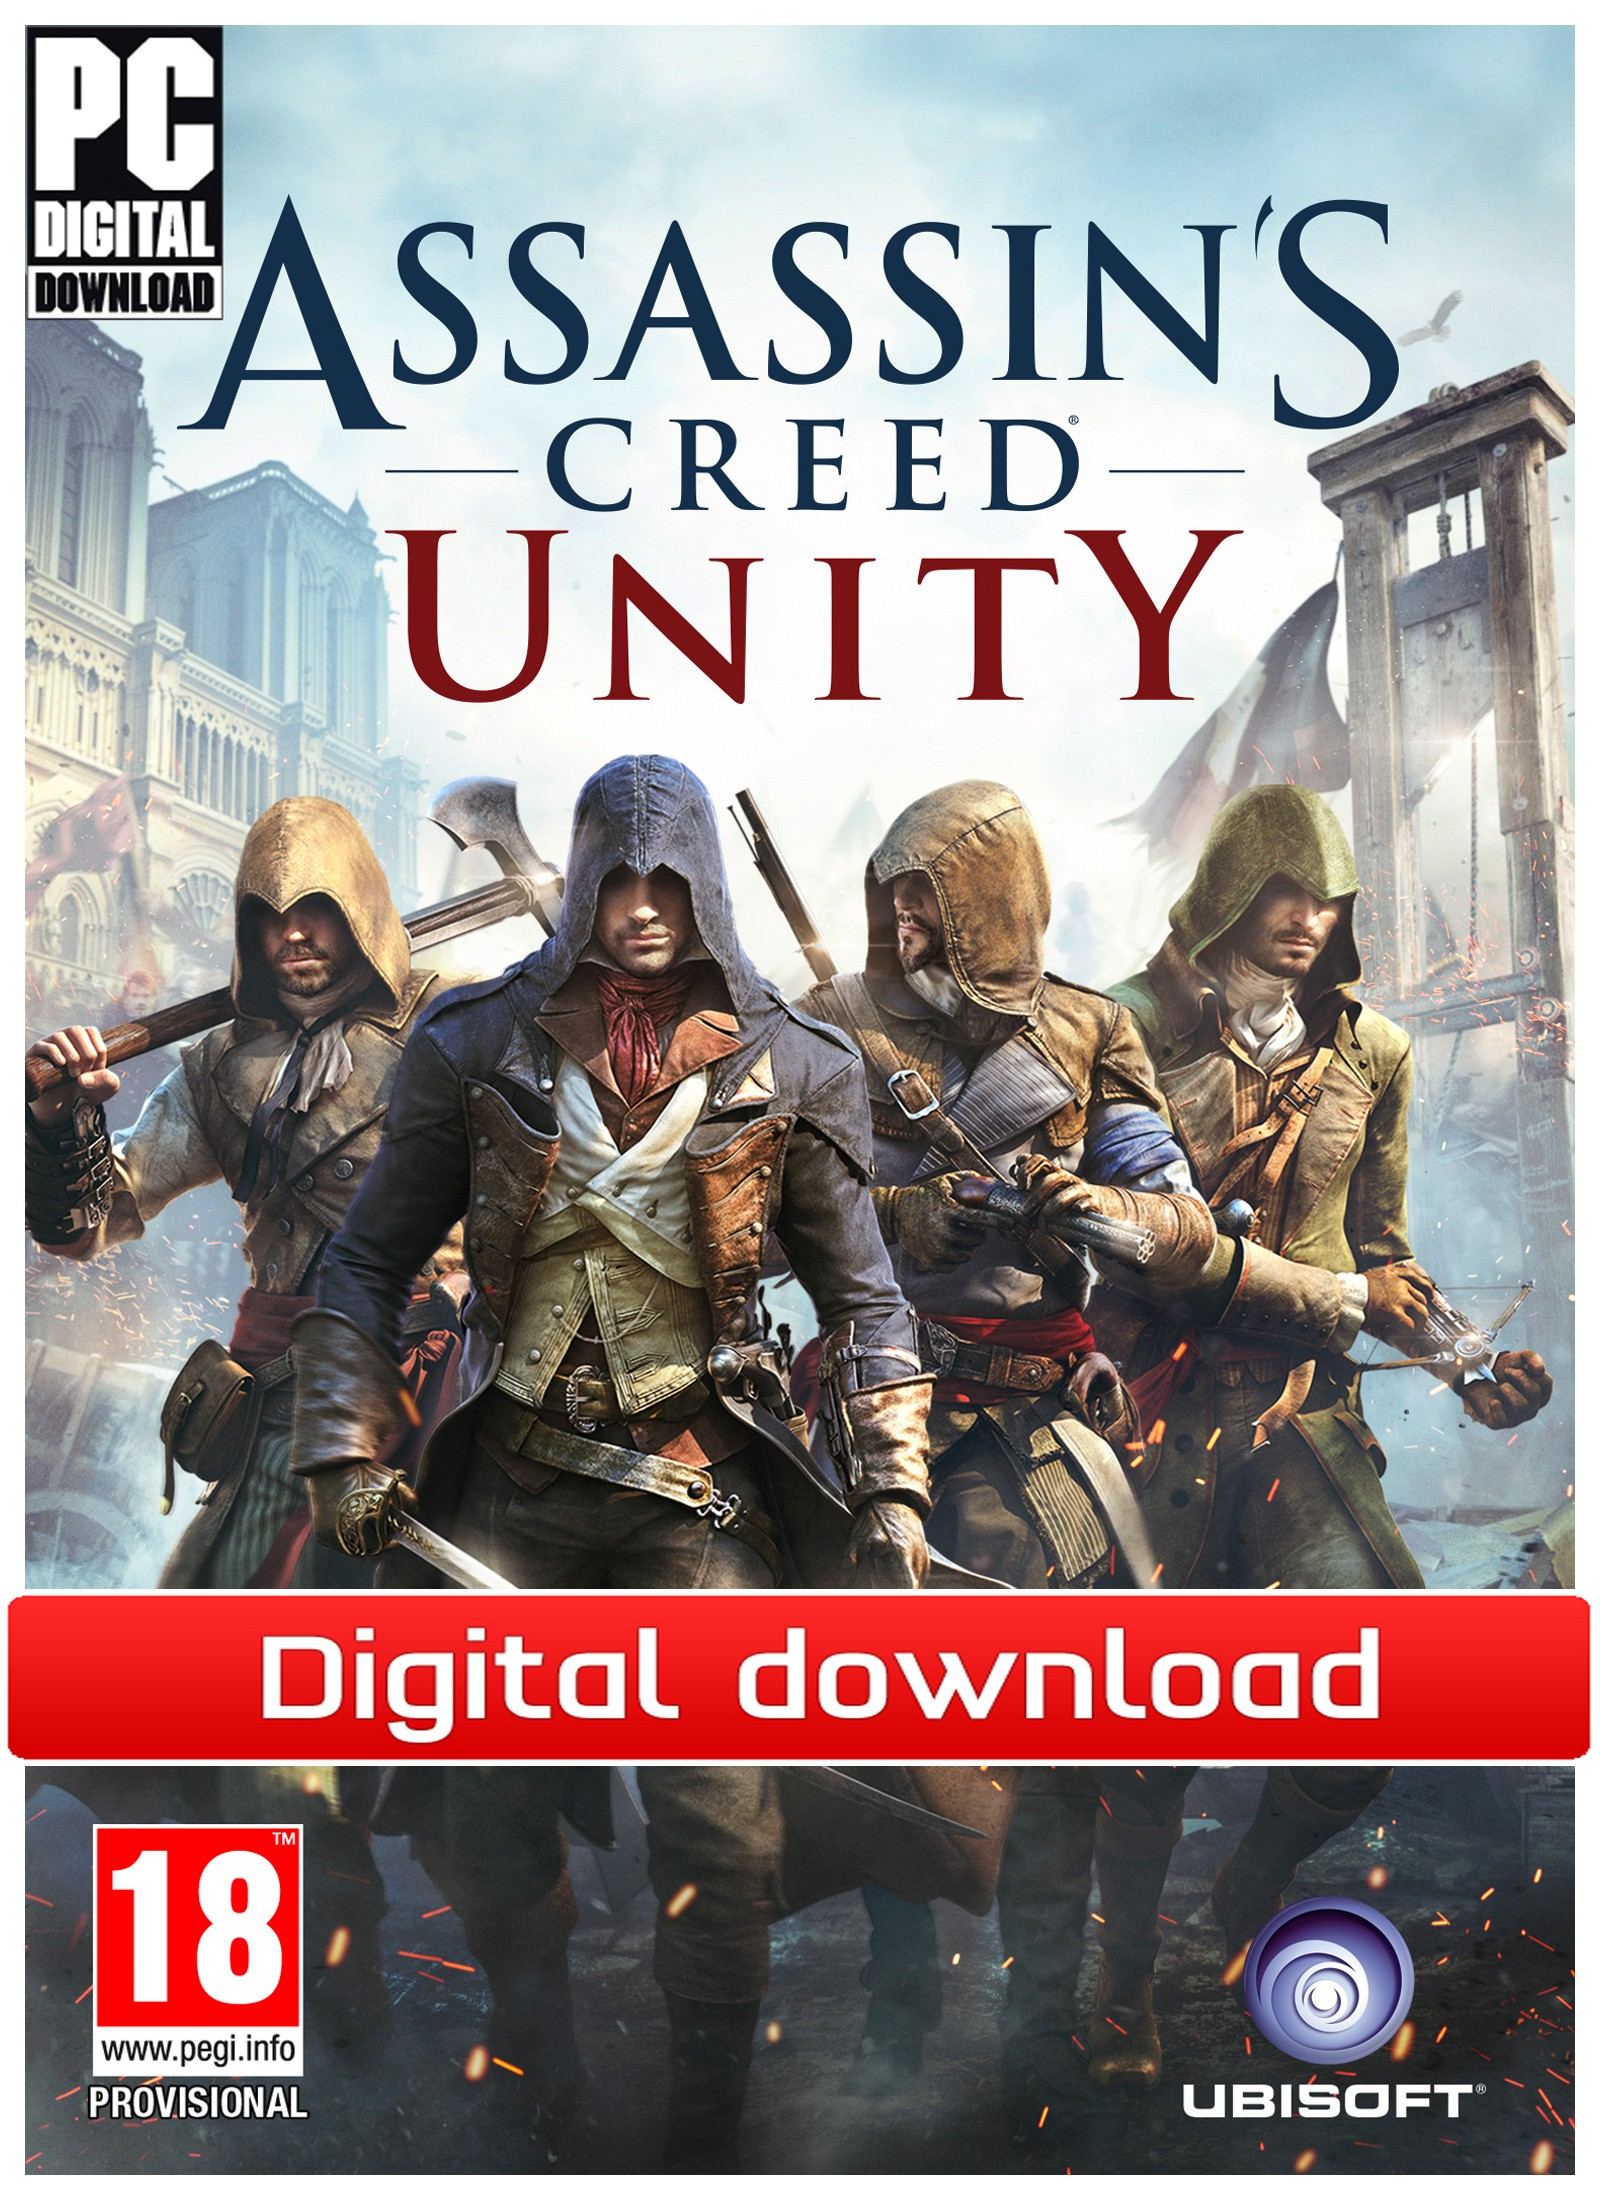 36483 : Assassins Creed Unity (PC nedlastning)